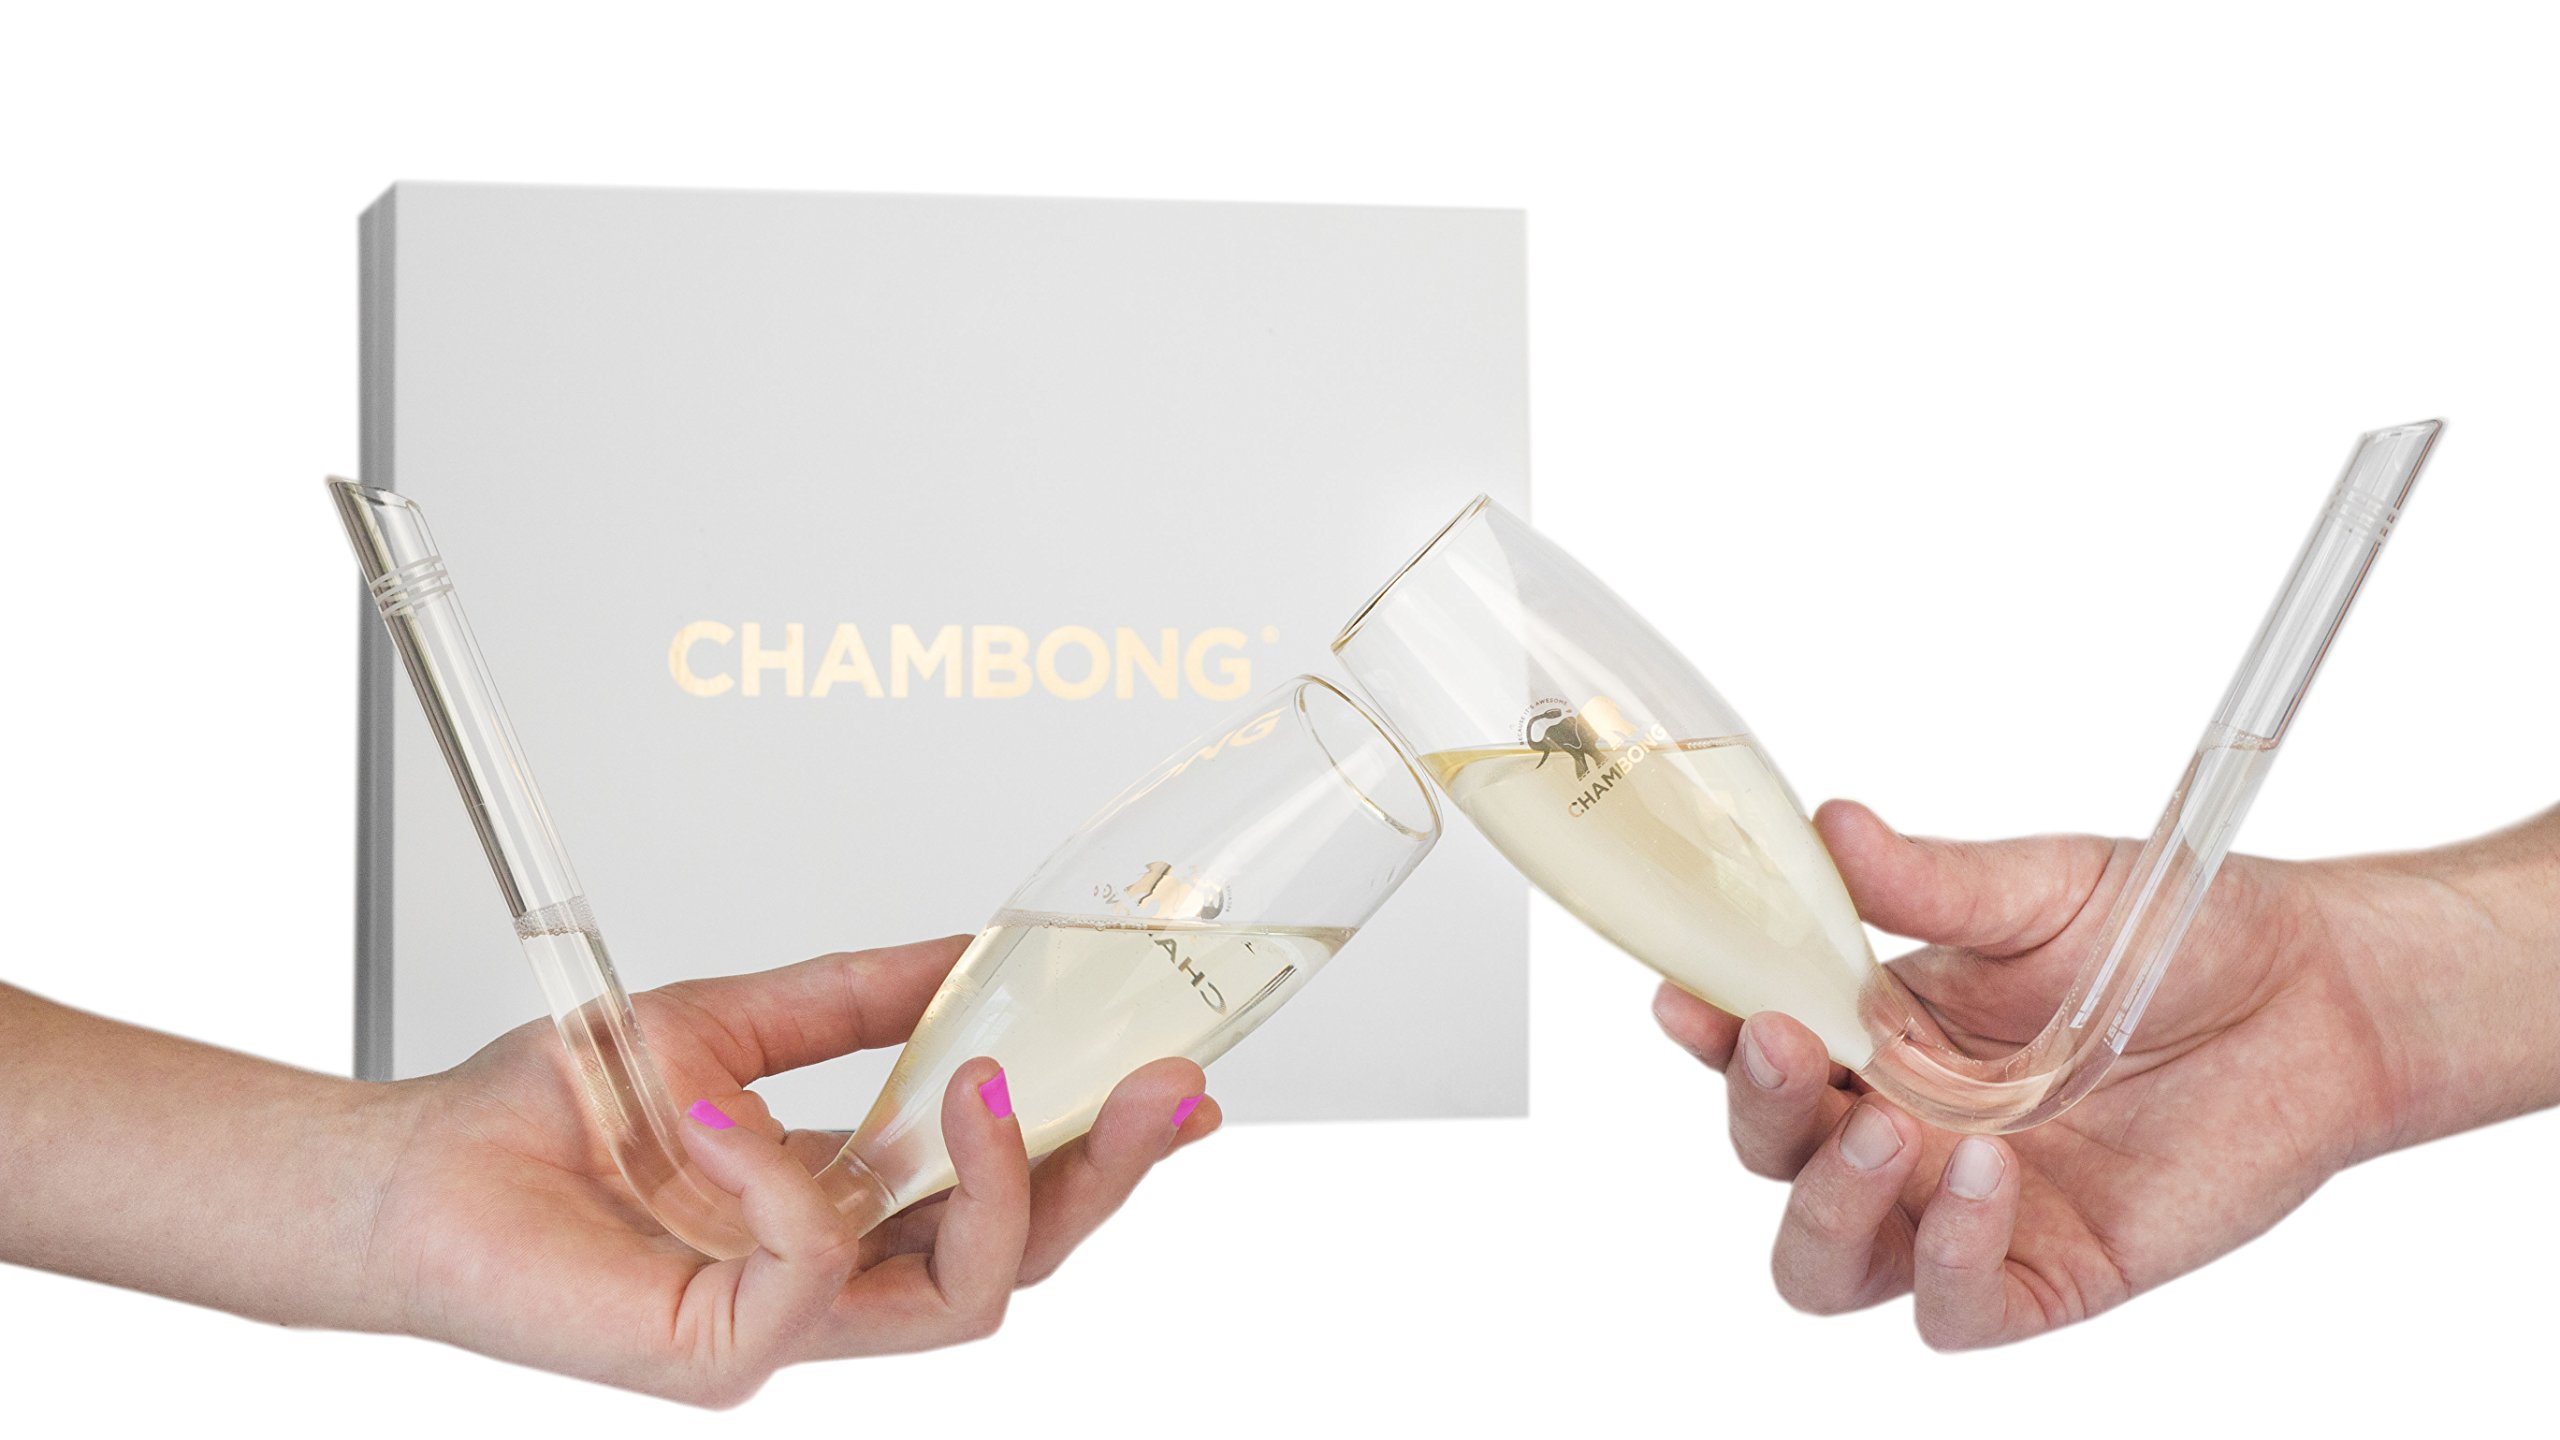 Chambong - Glassware for rapid Champagne consumption (2)